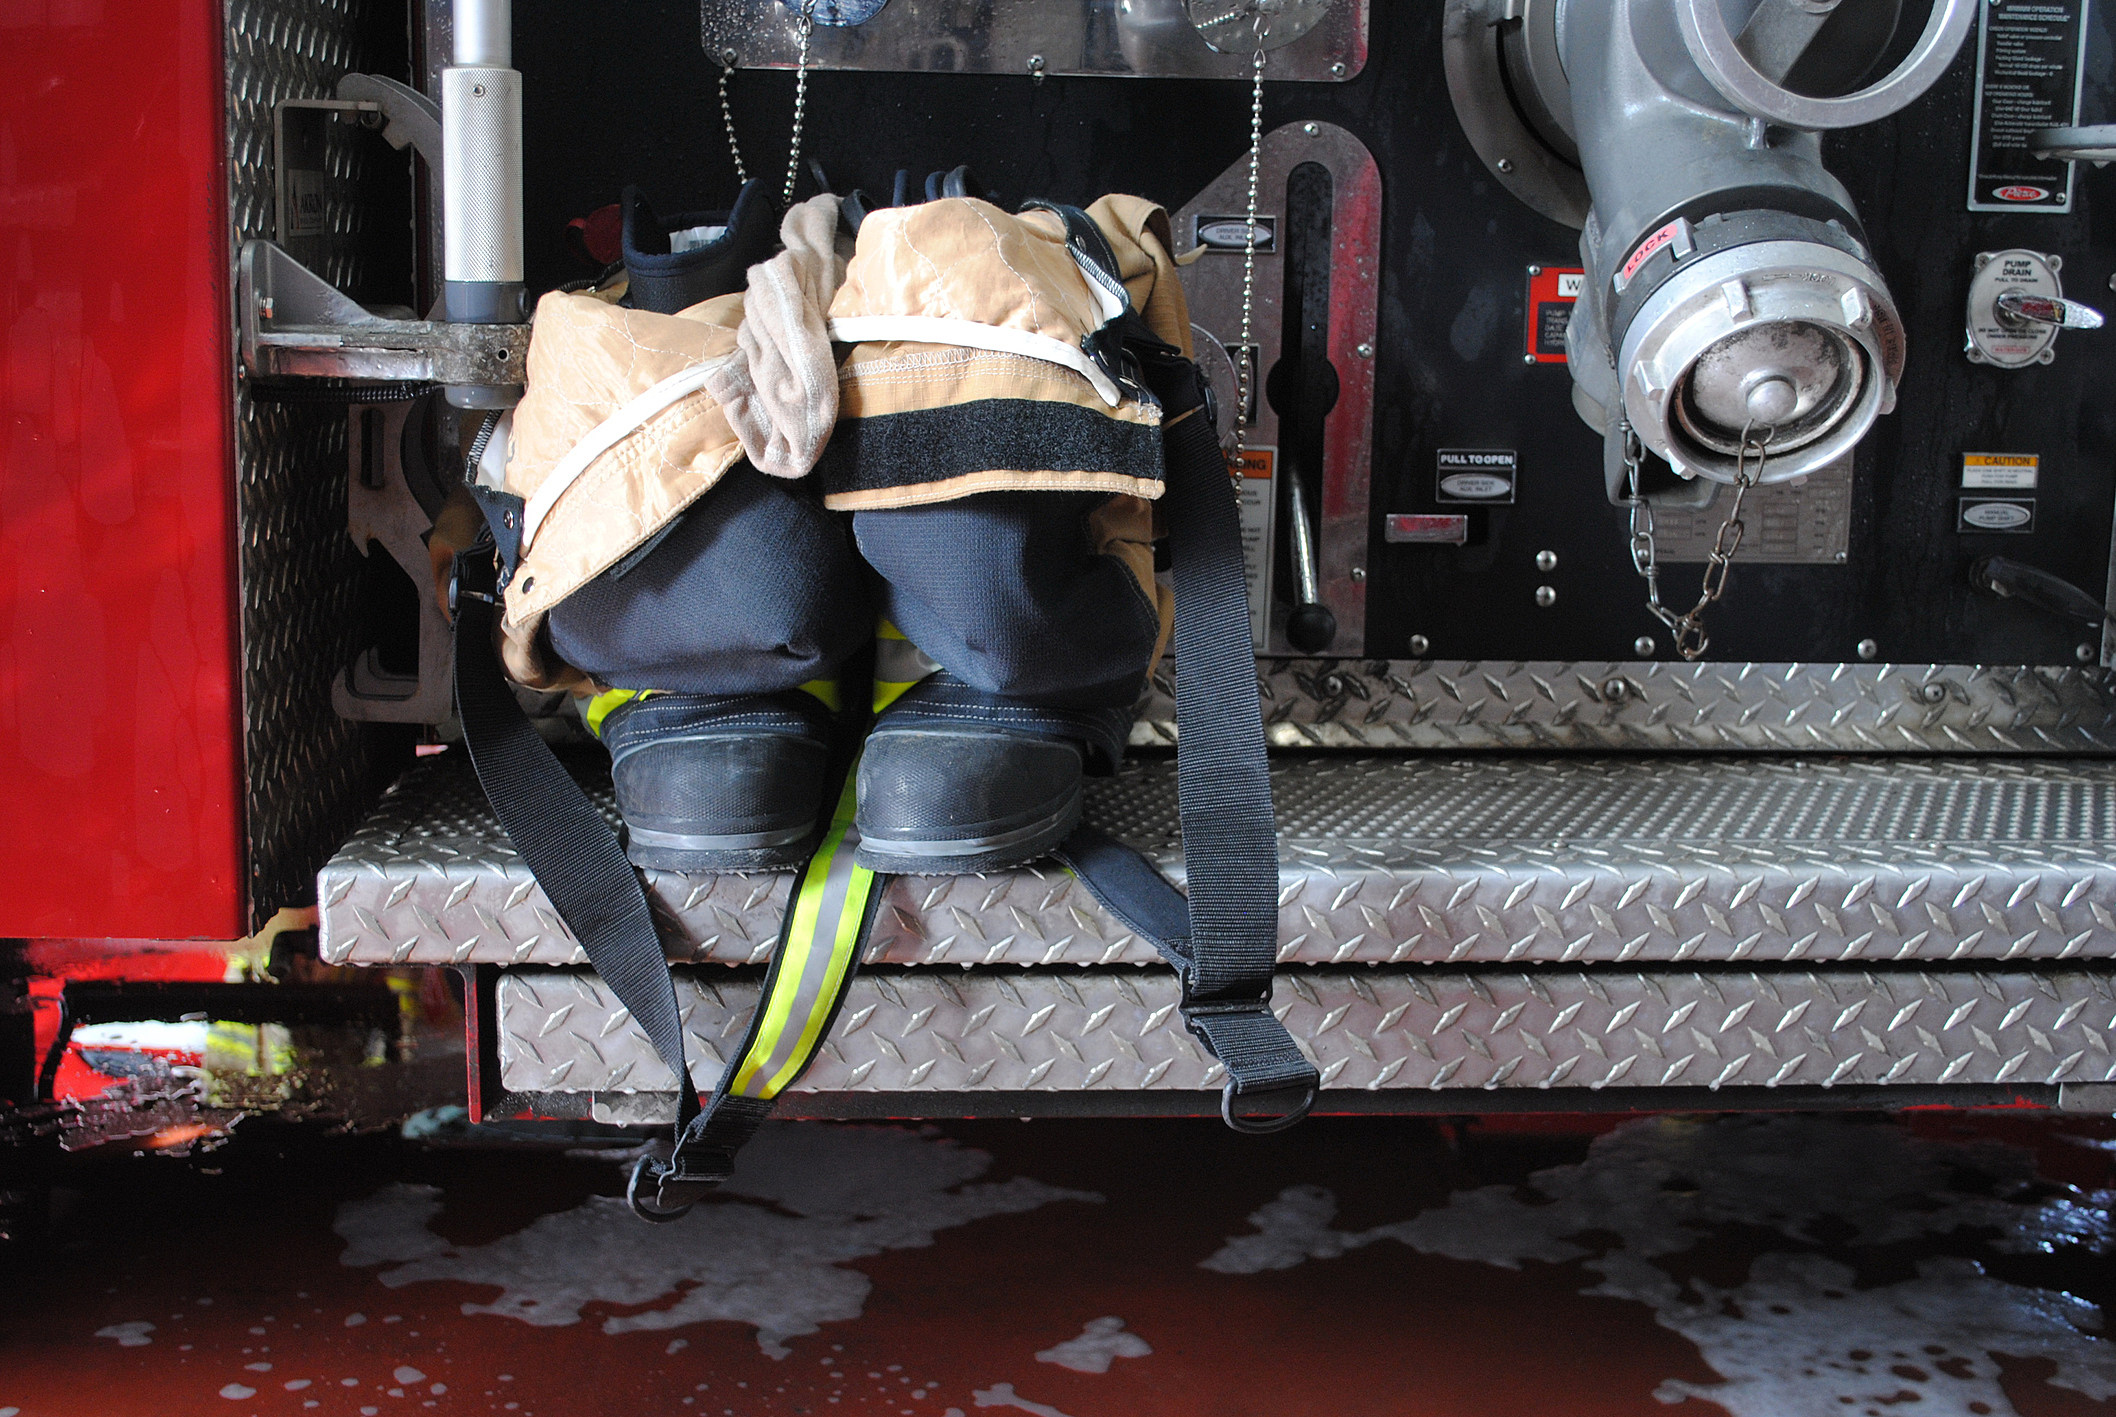 Firefighter Uniform and Boots on Firetruck